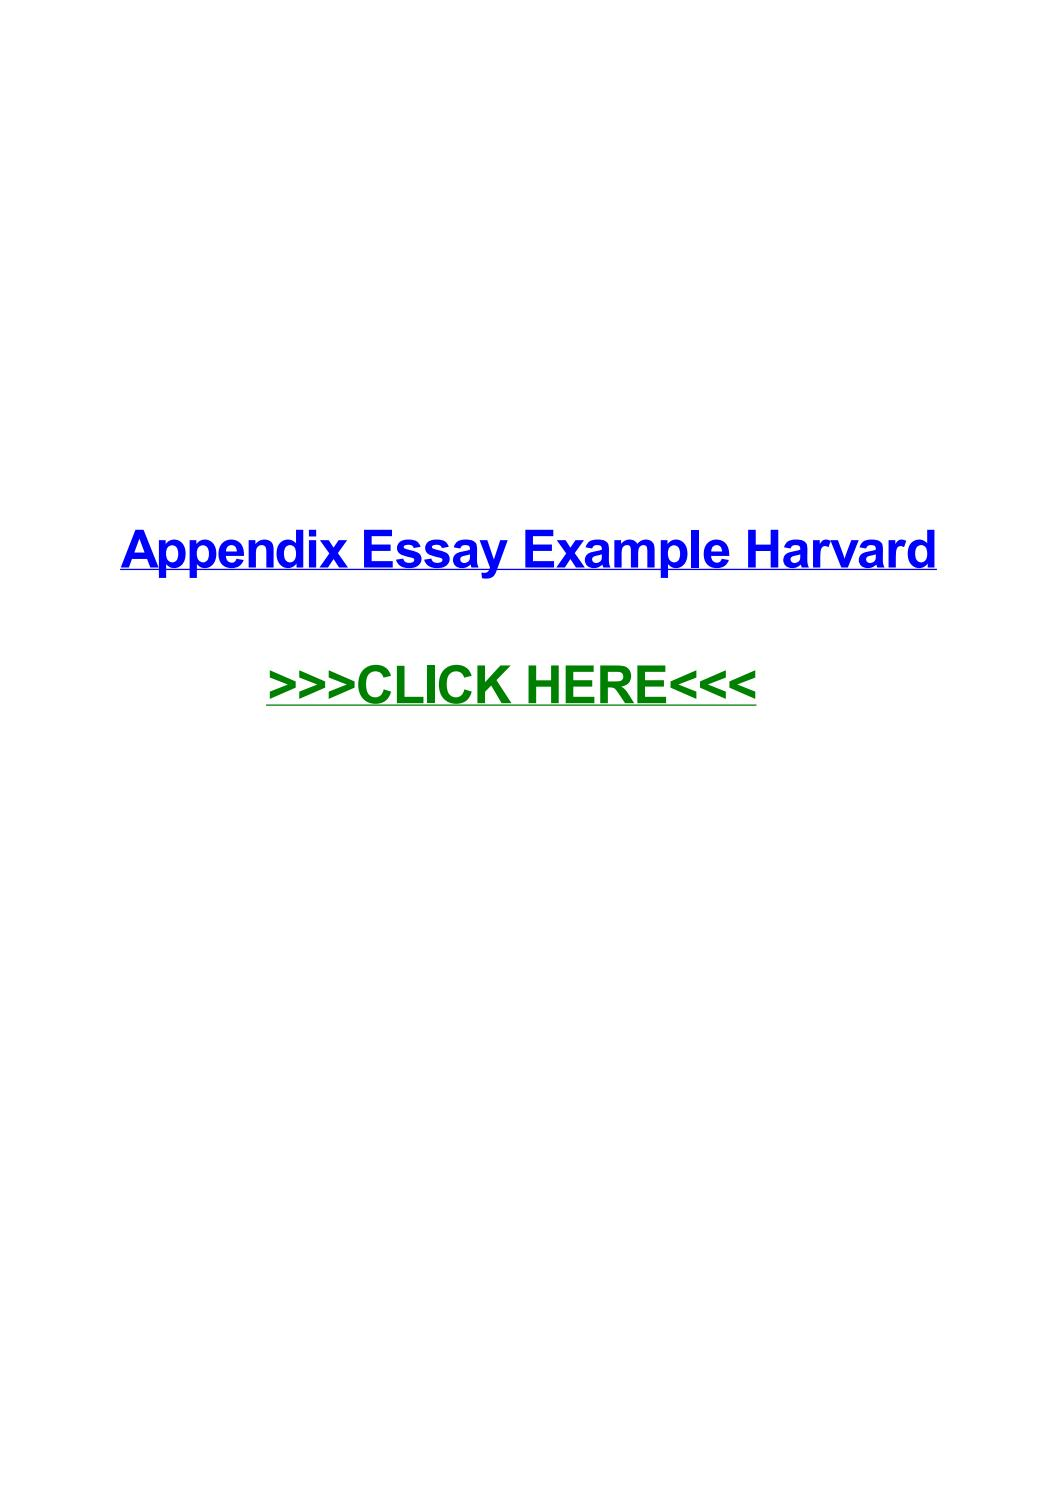 010 Appendices Example In Research Paper Harvard Style Page 1 Excellent Full